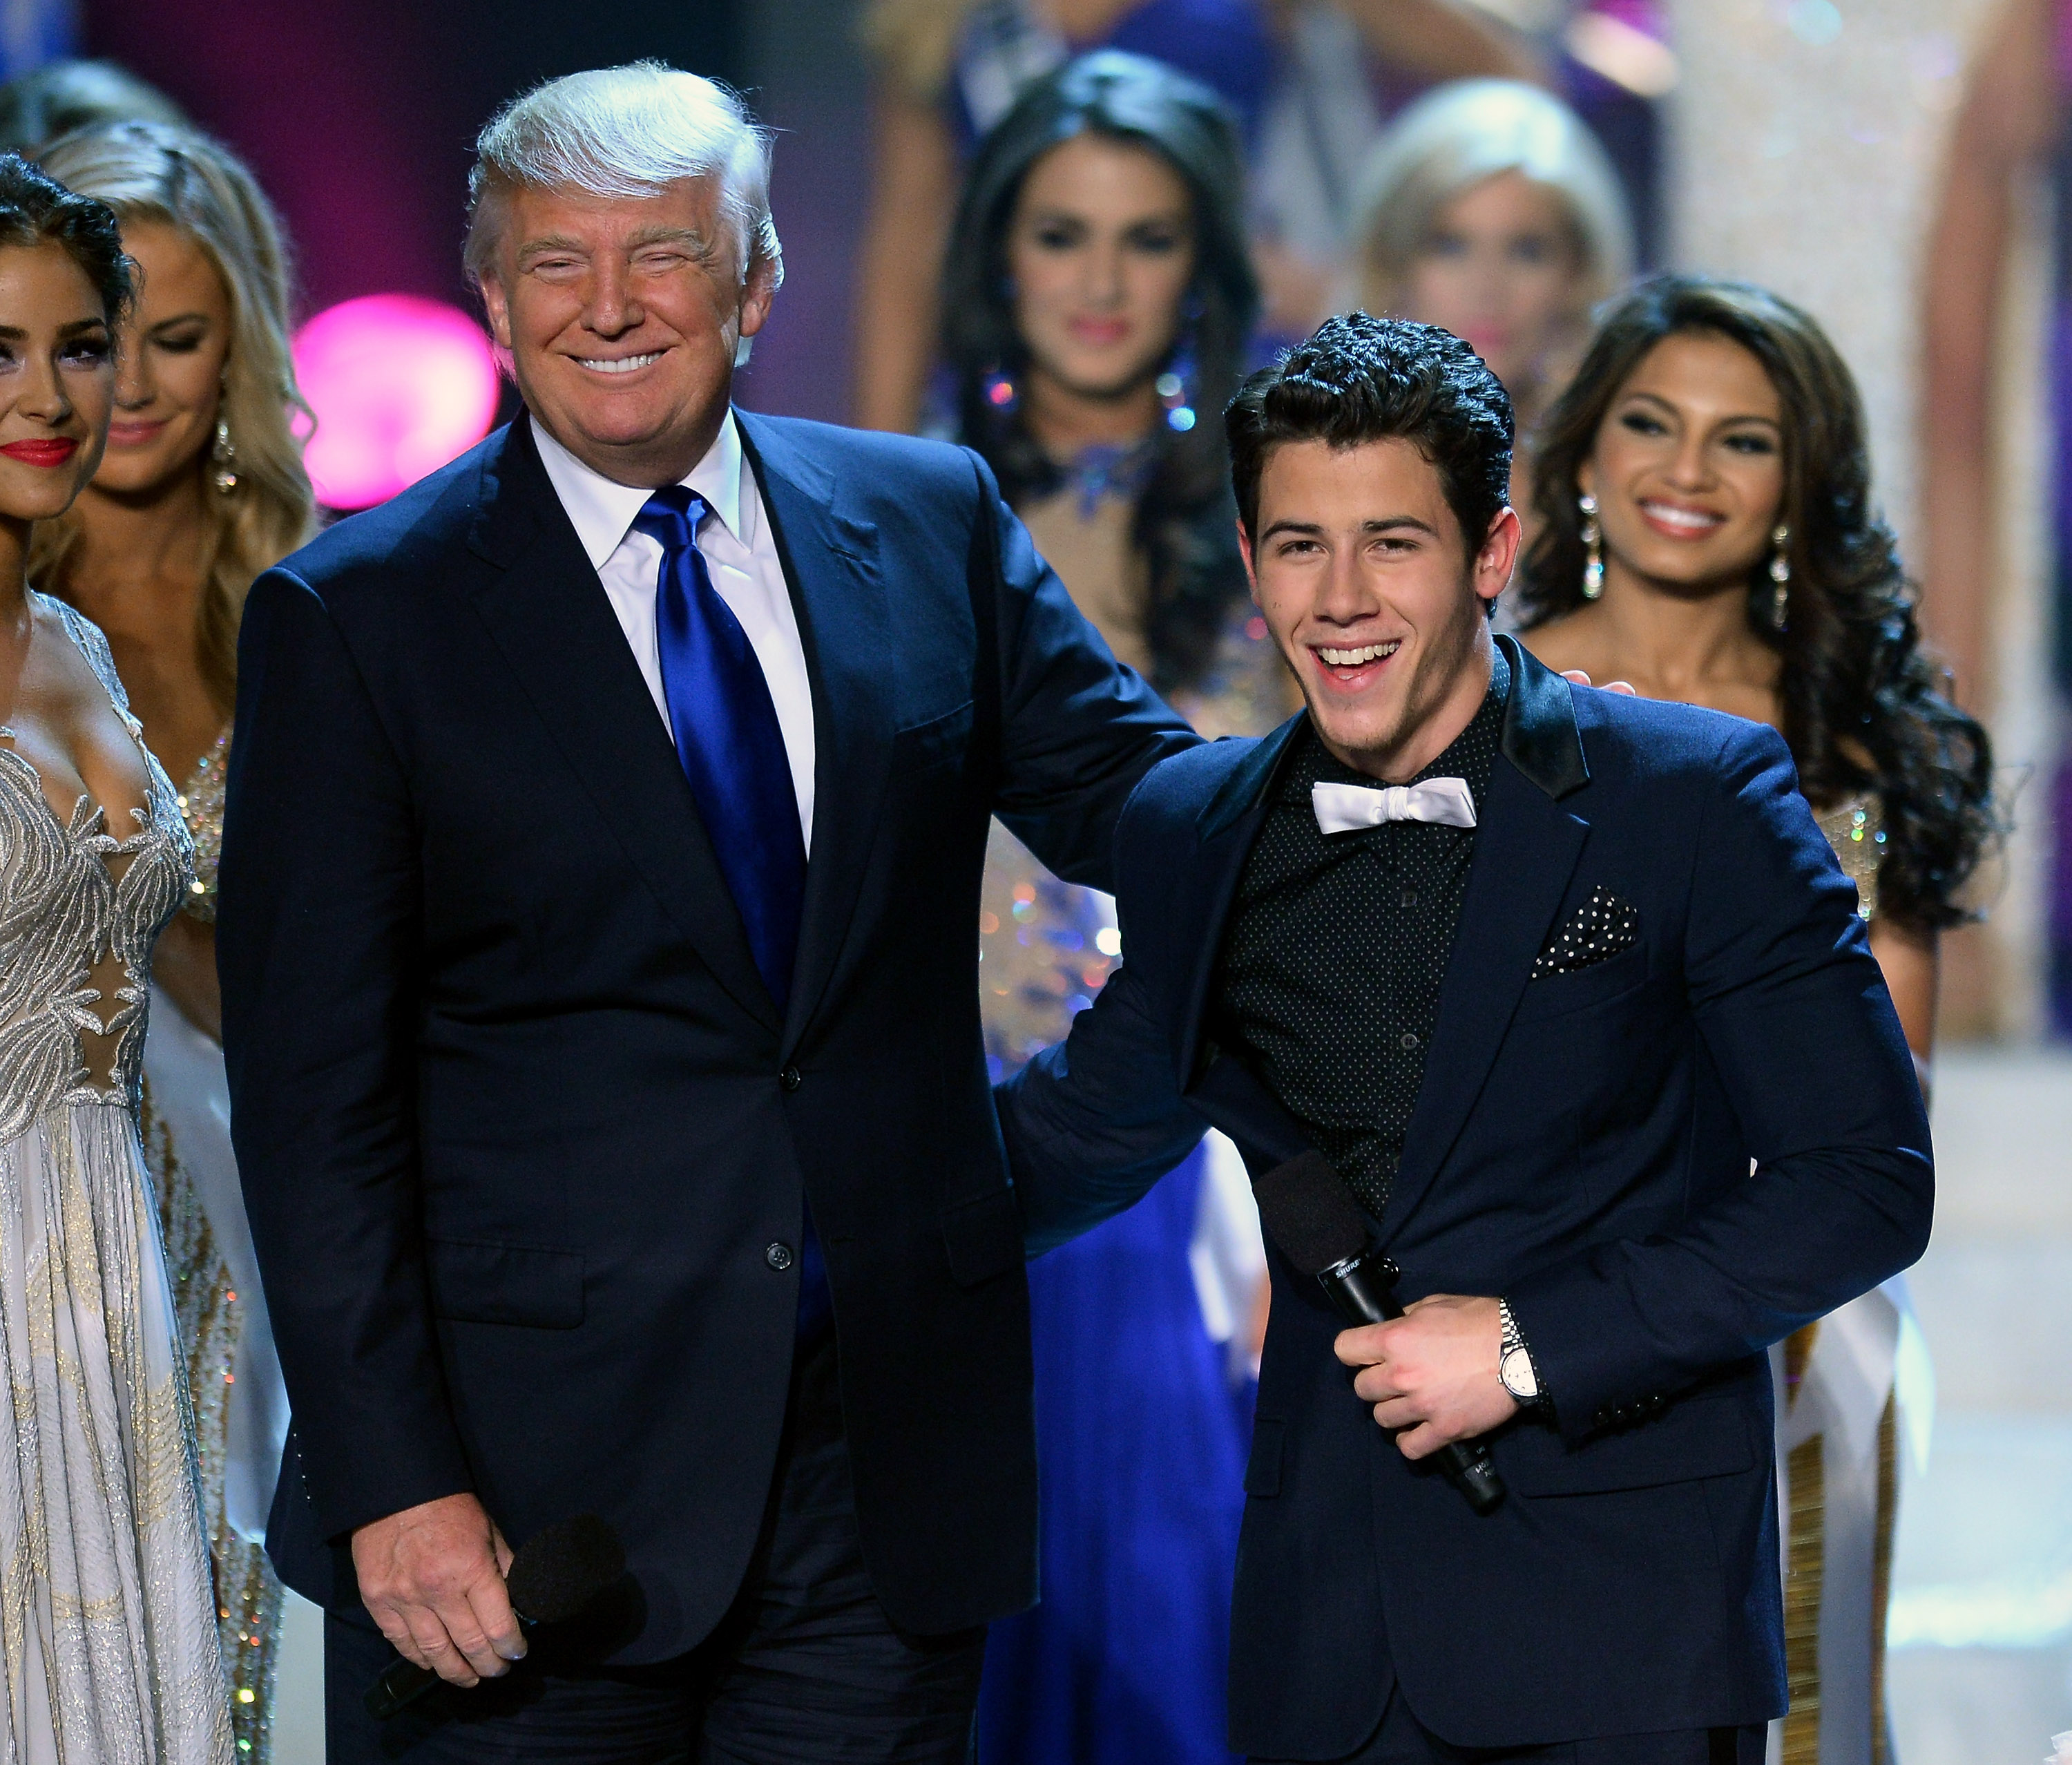 Donald Trump and recording artist and host Nick Jonas joke around onstage during the 2013 Miss USA pageant at PH Live at Planet Hollywood Resort & Casino on June 16, 2013 in Las Vegas.